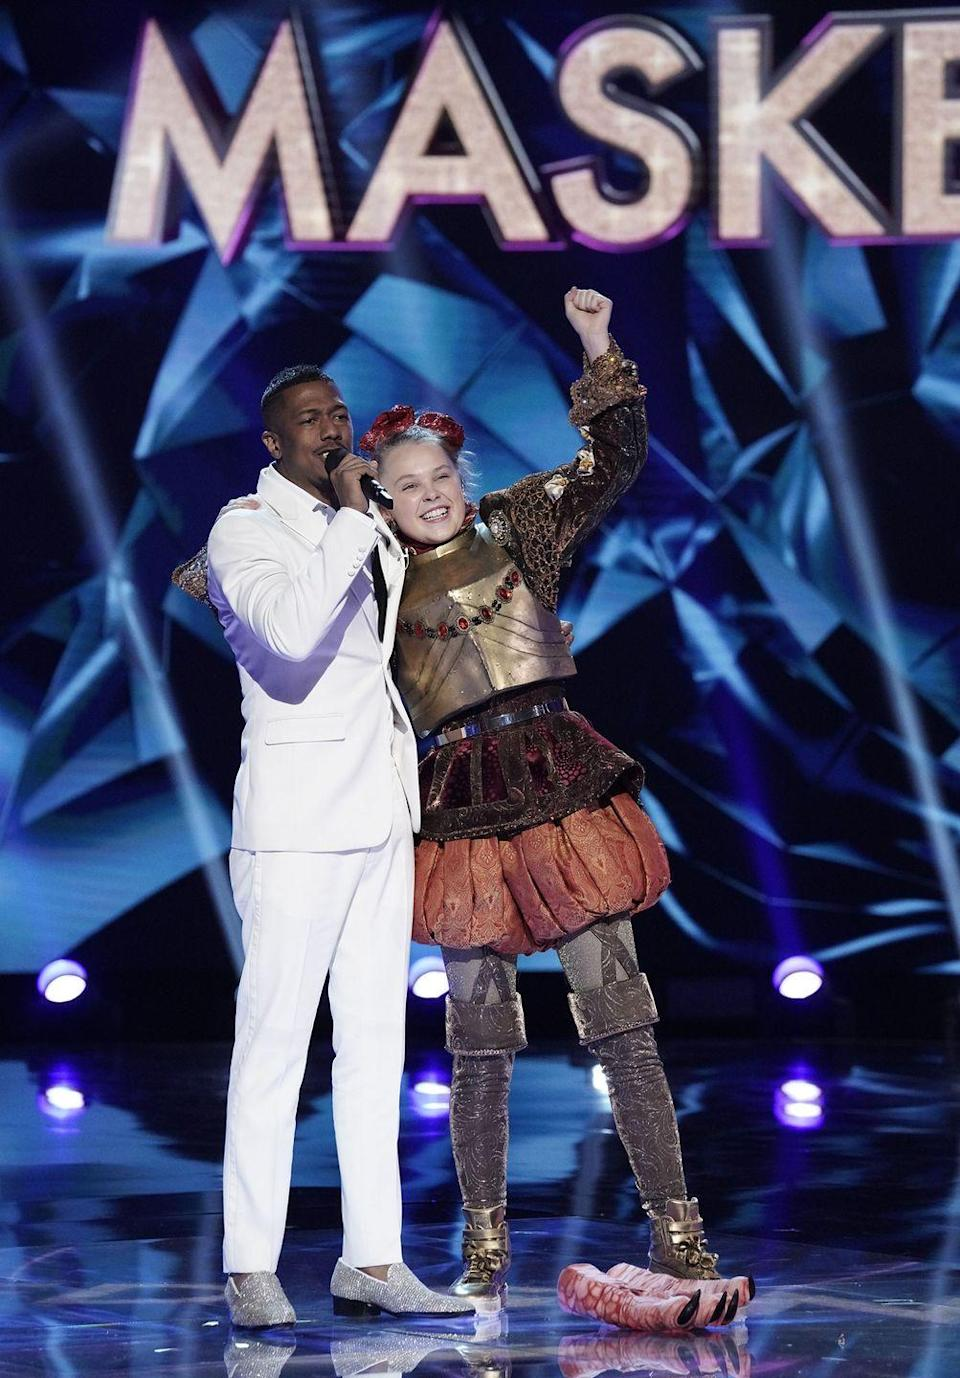 """<p>From Dr. Drew to Jojo Siwa, it's always a big surprise to the audience when the mask comes off — and production tries to cast the biggest names possible. """"We strive to get a cross section of celebrities from all walks of life and the bigger the name the better,"""" executive producer Craig Plestis told <a href=""""https://www.express.co.uk/showbiz/tv-radio/1229957/The-Masked-Singer-How-celebrities-chosen-stars-contract-ITV-series"""" rel=""""nofollow noopener"""" target=""""_blank"""" data-ylk=""""slk:Express"""" class=""""link rapid-noclick-resp"""">Express</a>.</p>"""